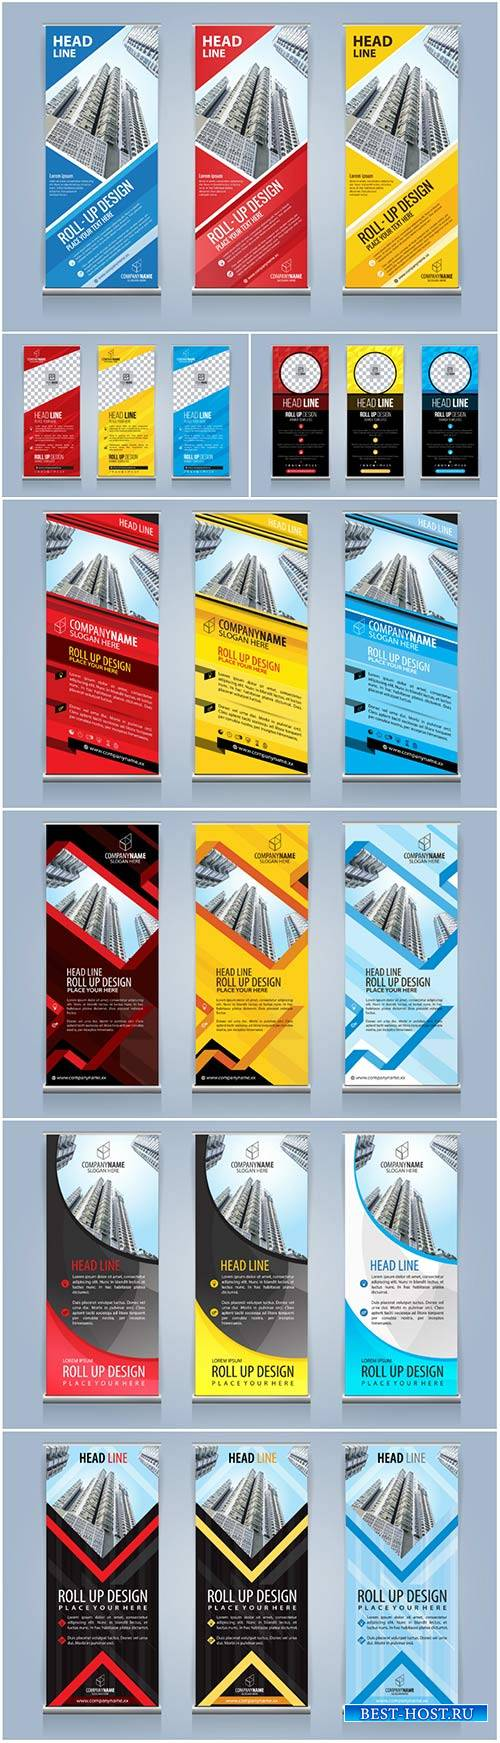 Roll up banners for web and advertisement print out, vector flyer handout d ...